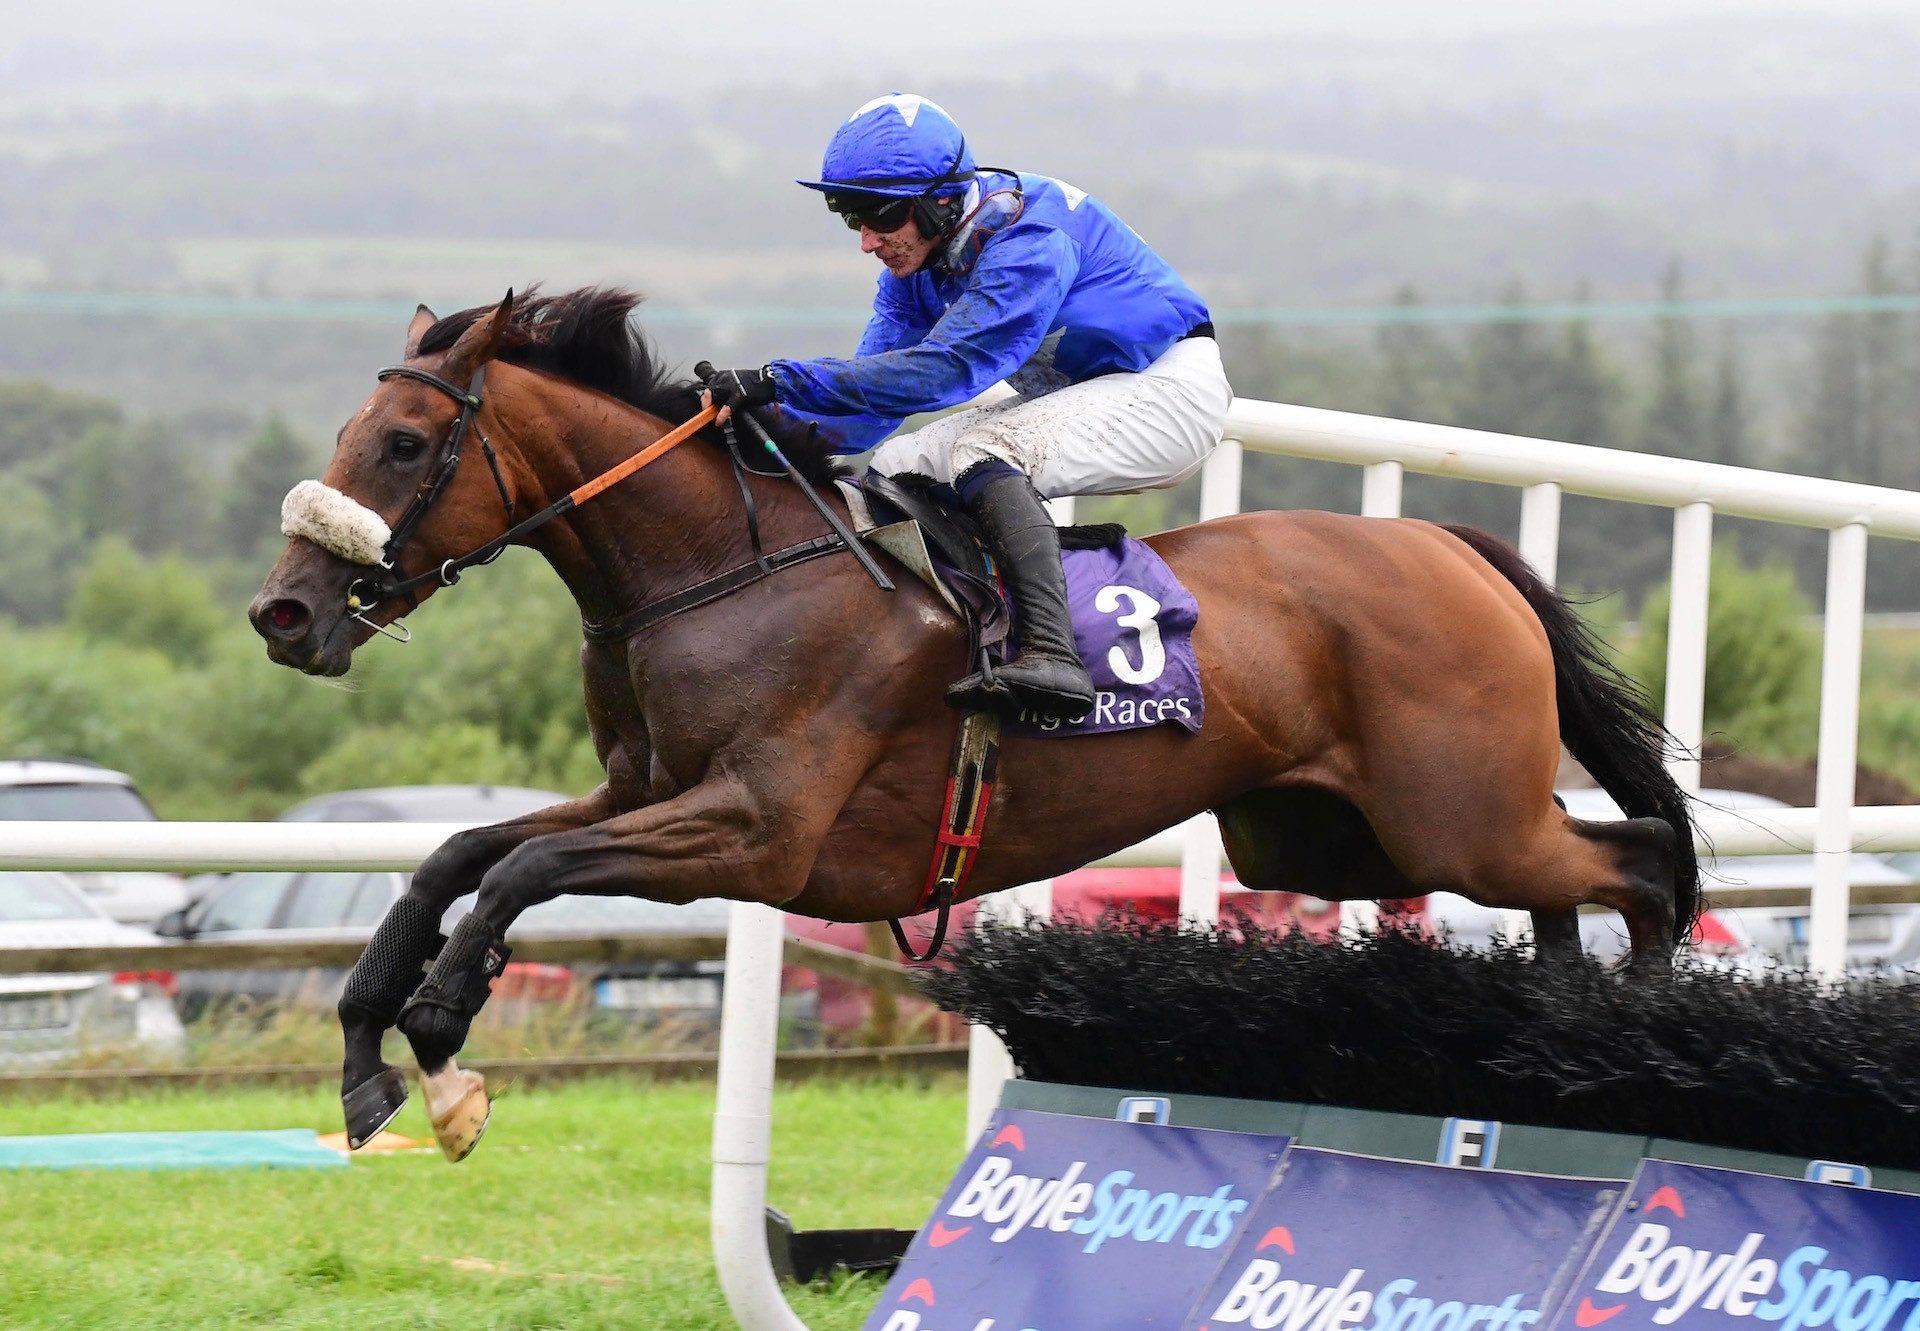 Trevanna (Requinto) winning an auction race at Naas